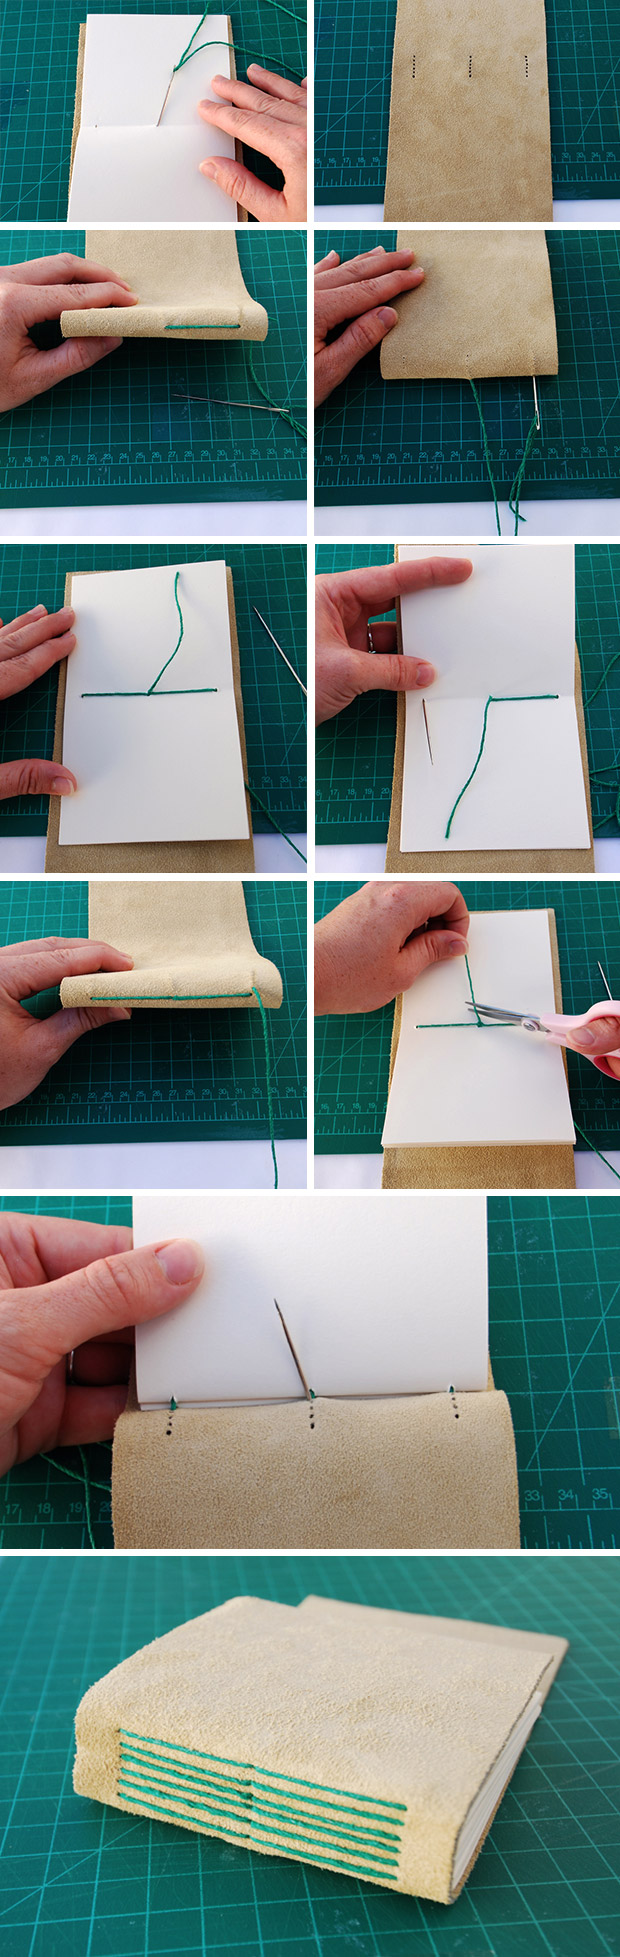 leather_bookbinding_93_6_5_s7